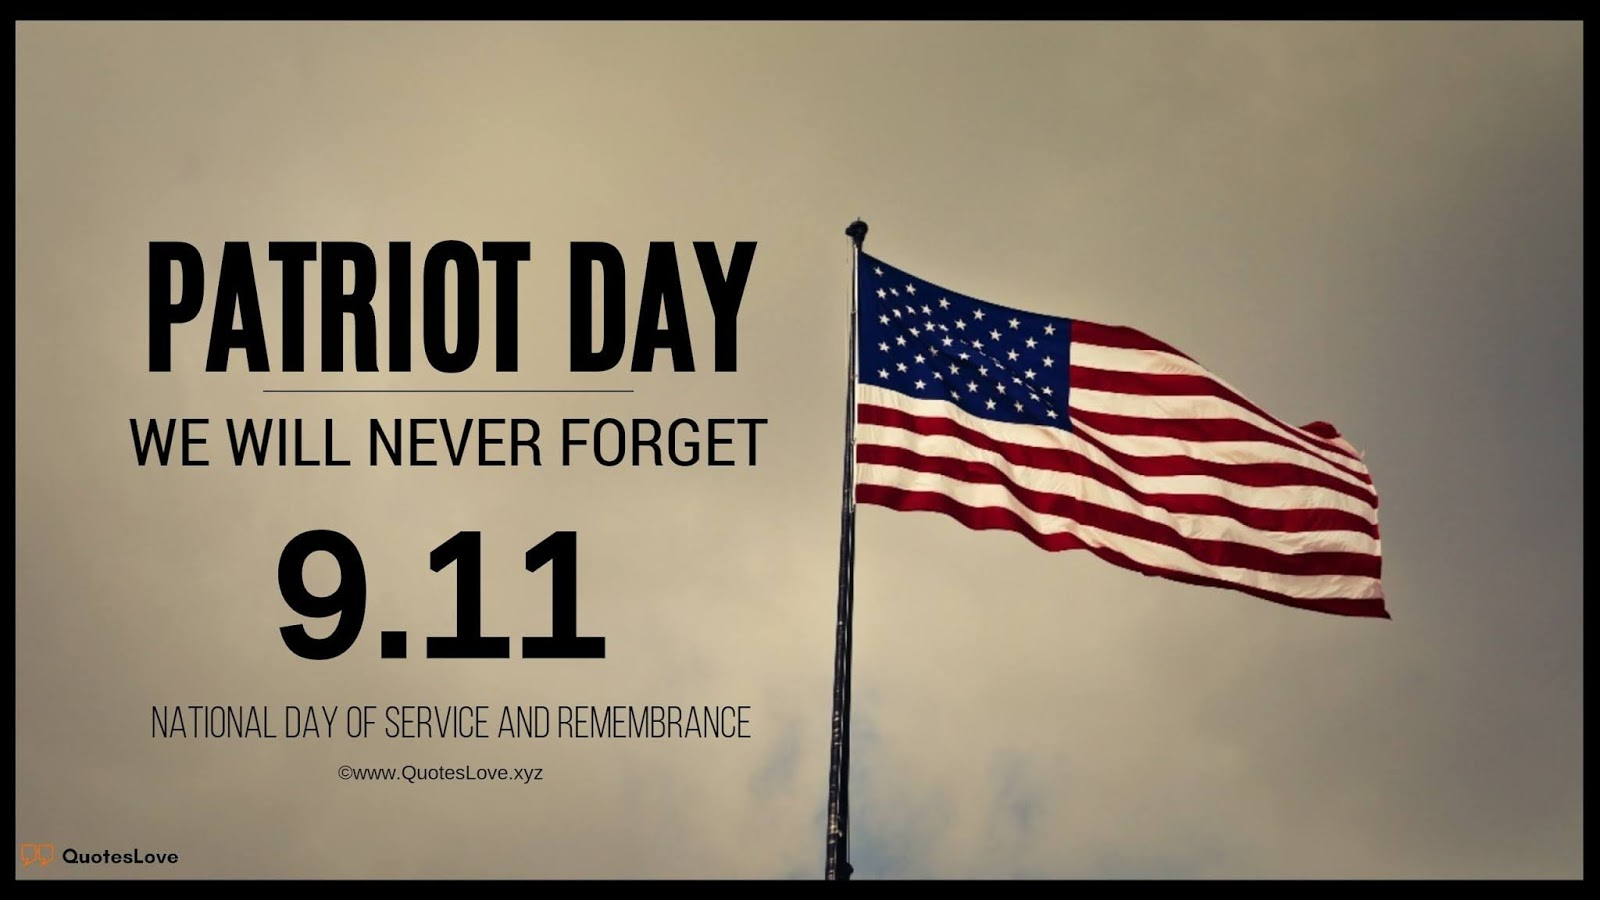 Patriot Day Quotes, Sayings, Wishes, Greetings, Images, Poster, Pictures, Wallpaper